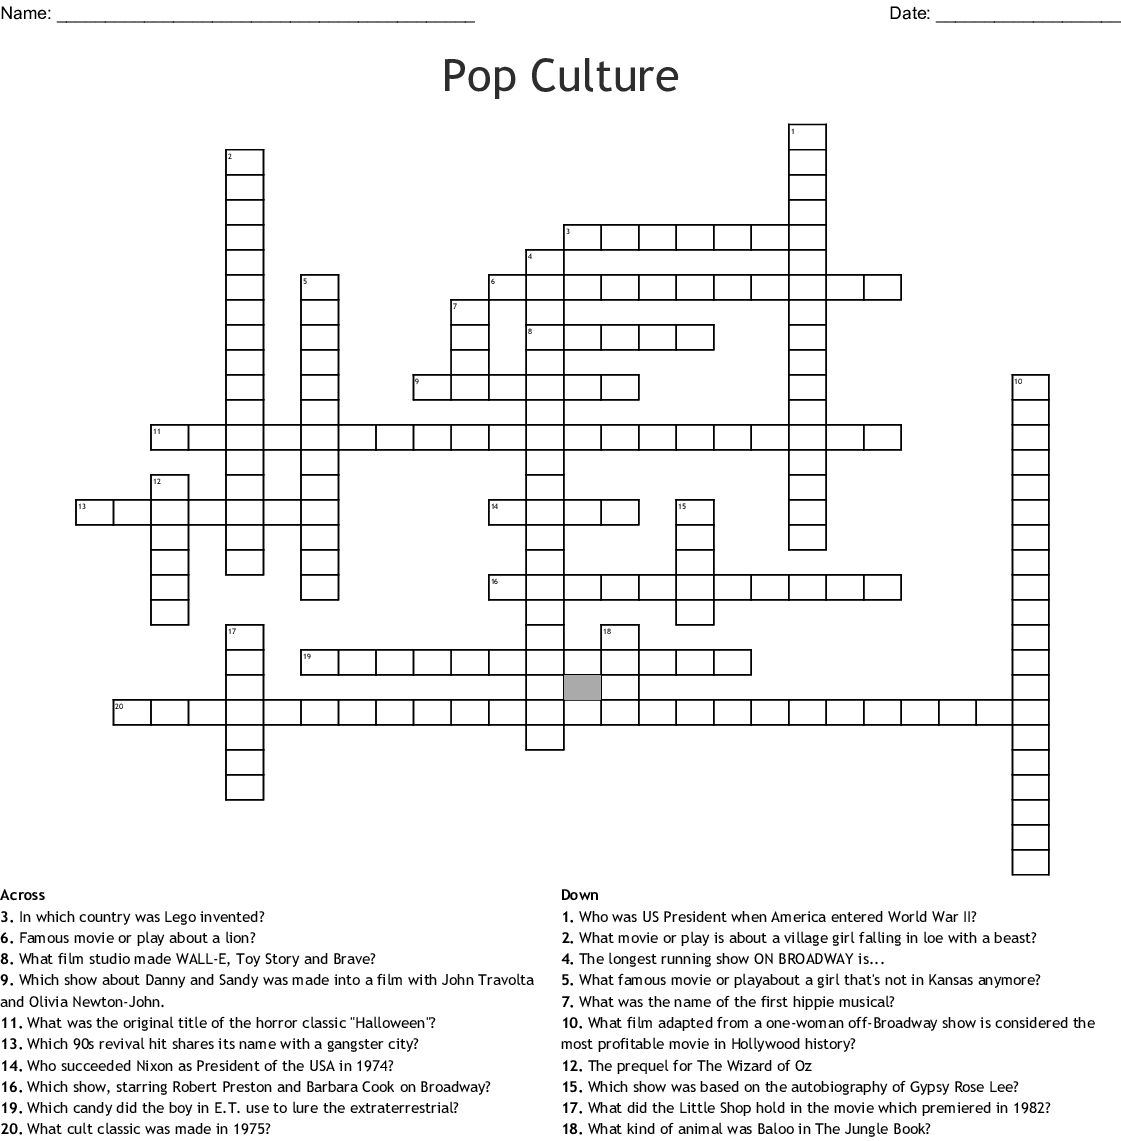 Pop Culture Crossword - Wordmint - Printable Crossword Puzzles Pop Culture